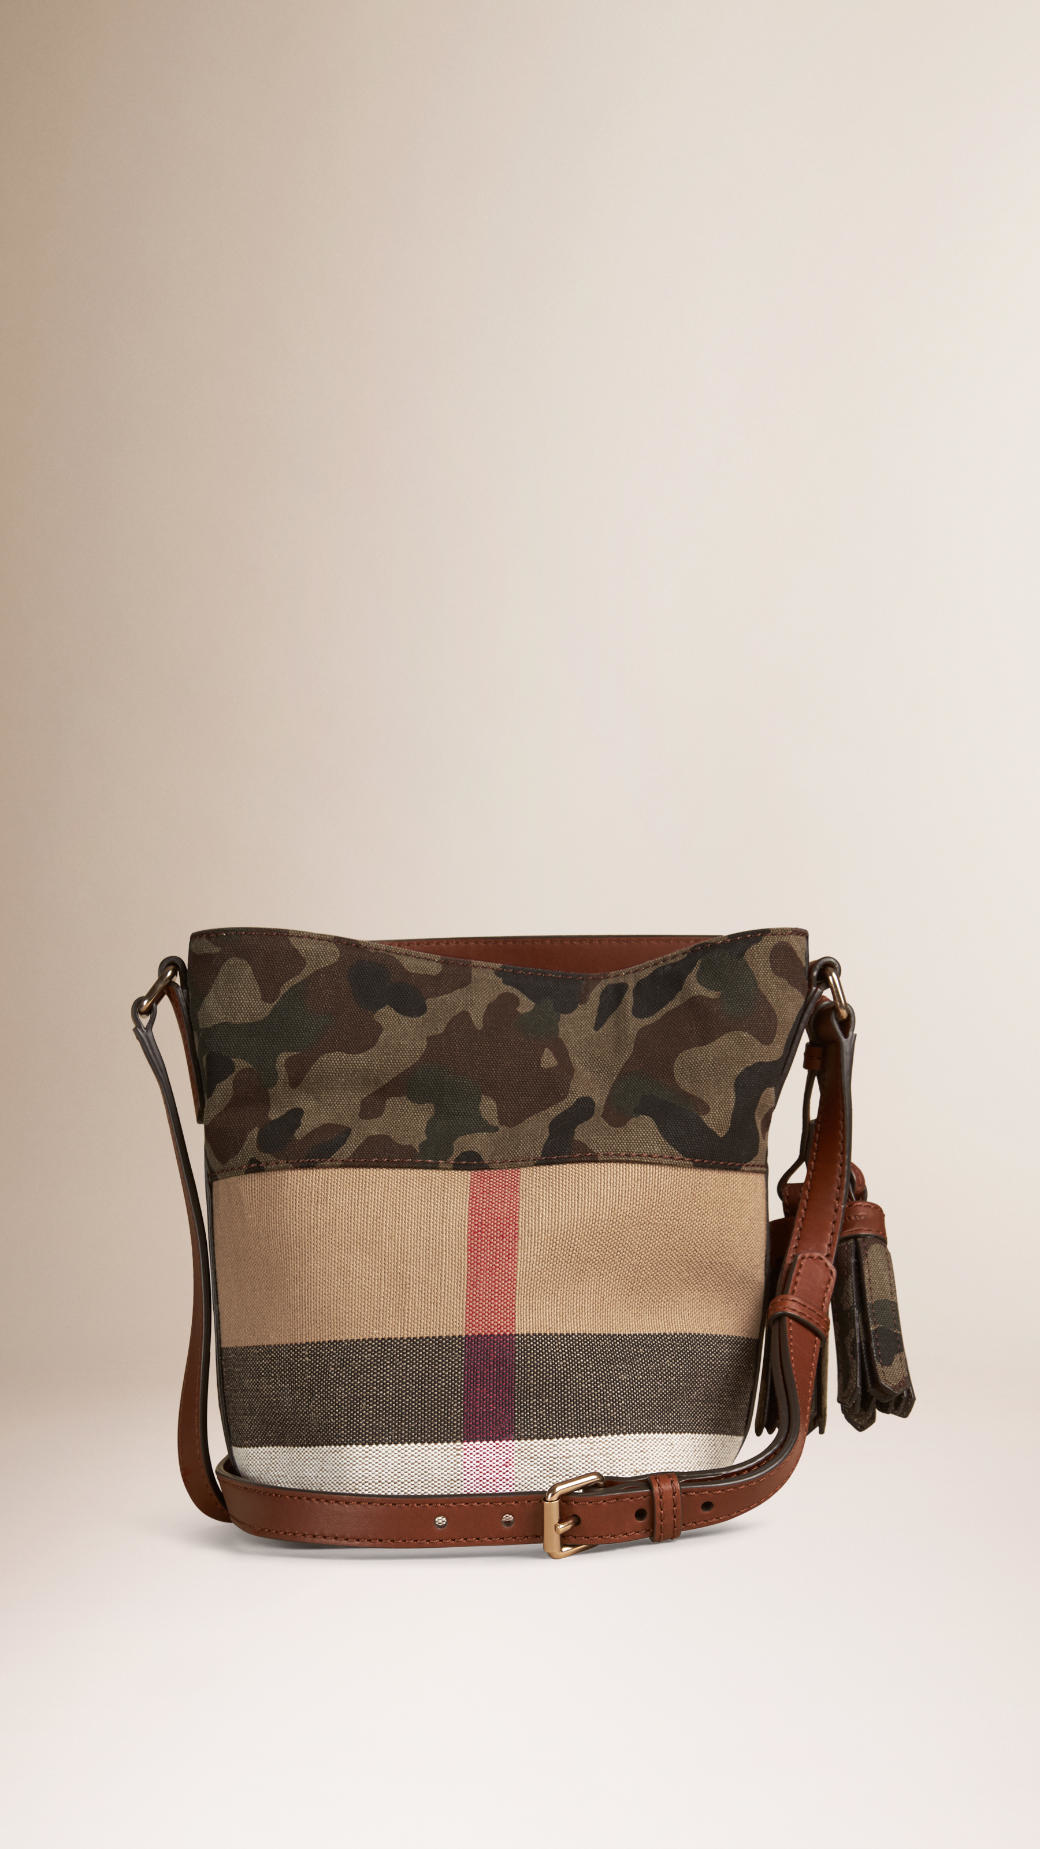 Burberry The Small Ashby In Canvas Check And Camouflage In